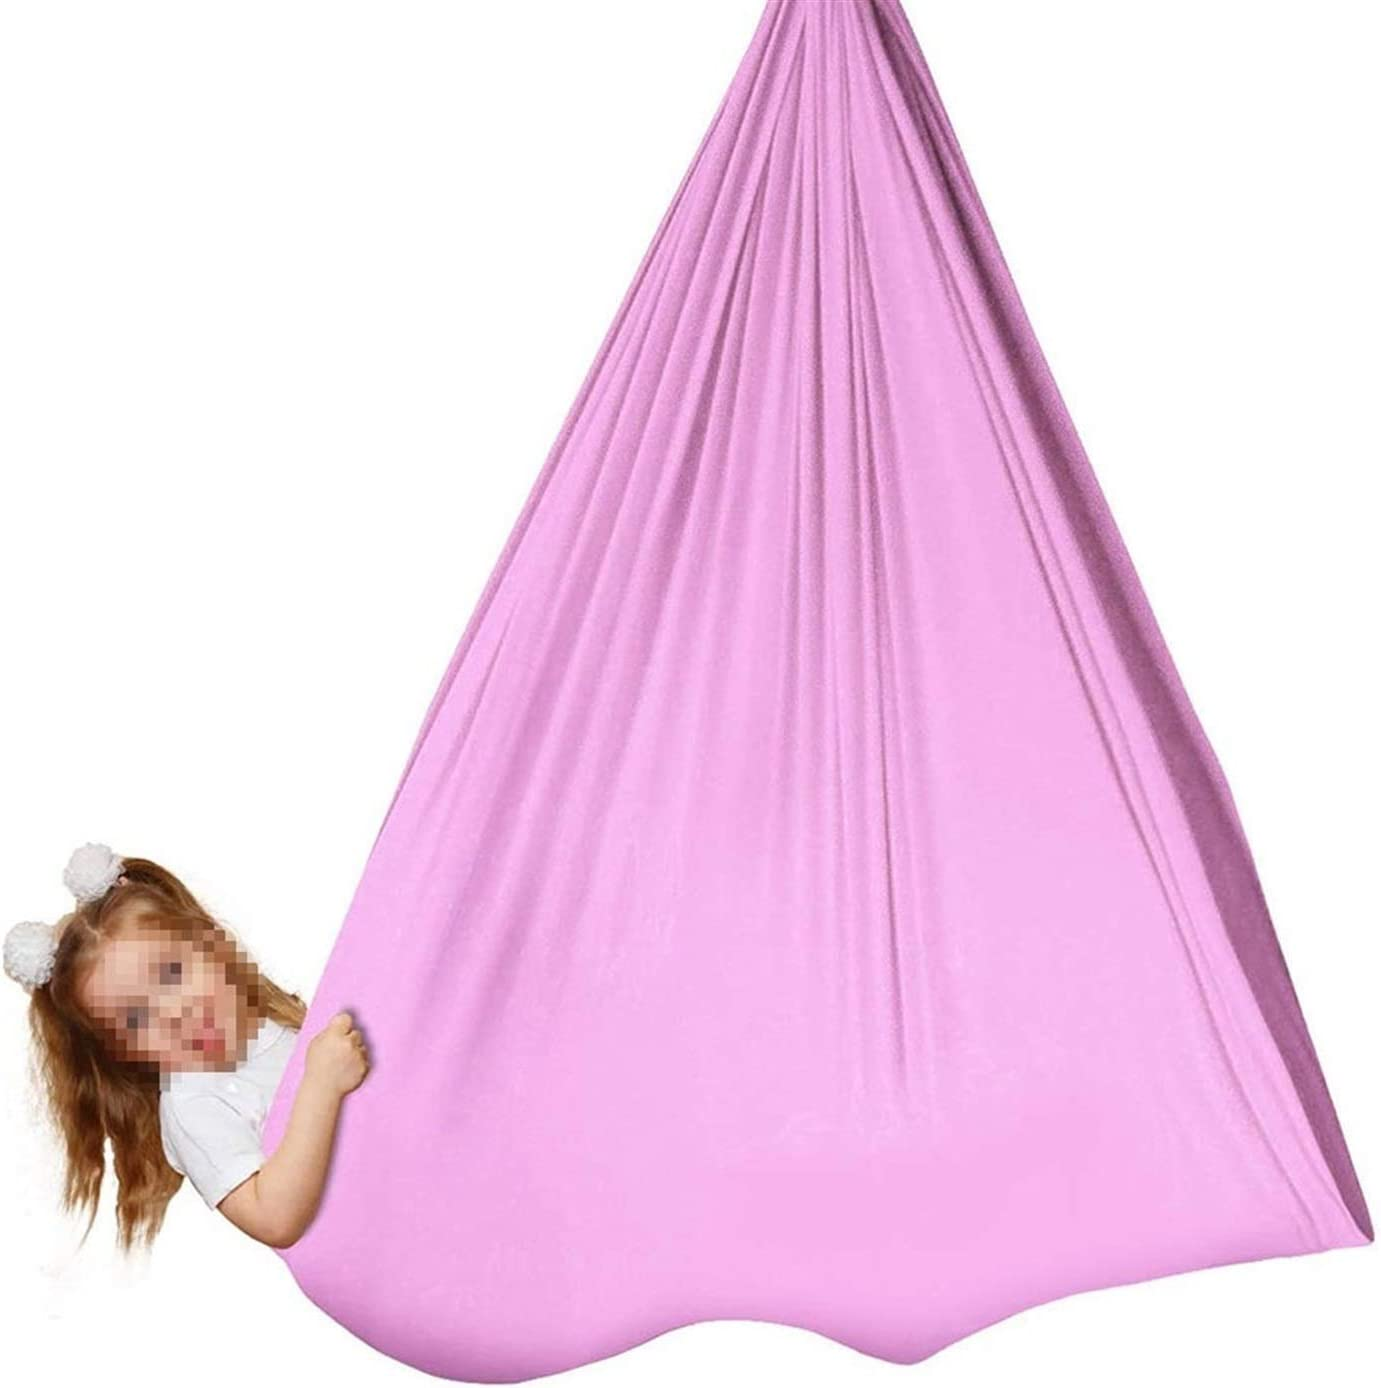 YXYH Manufacturer direct delivery Shipping included Portable Therapy Swing for Elastici Special Needs Kids with